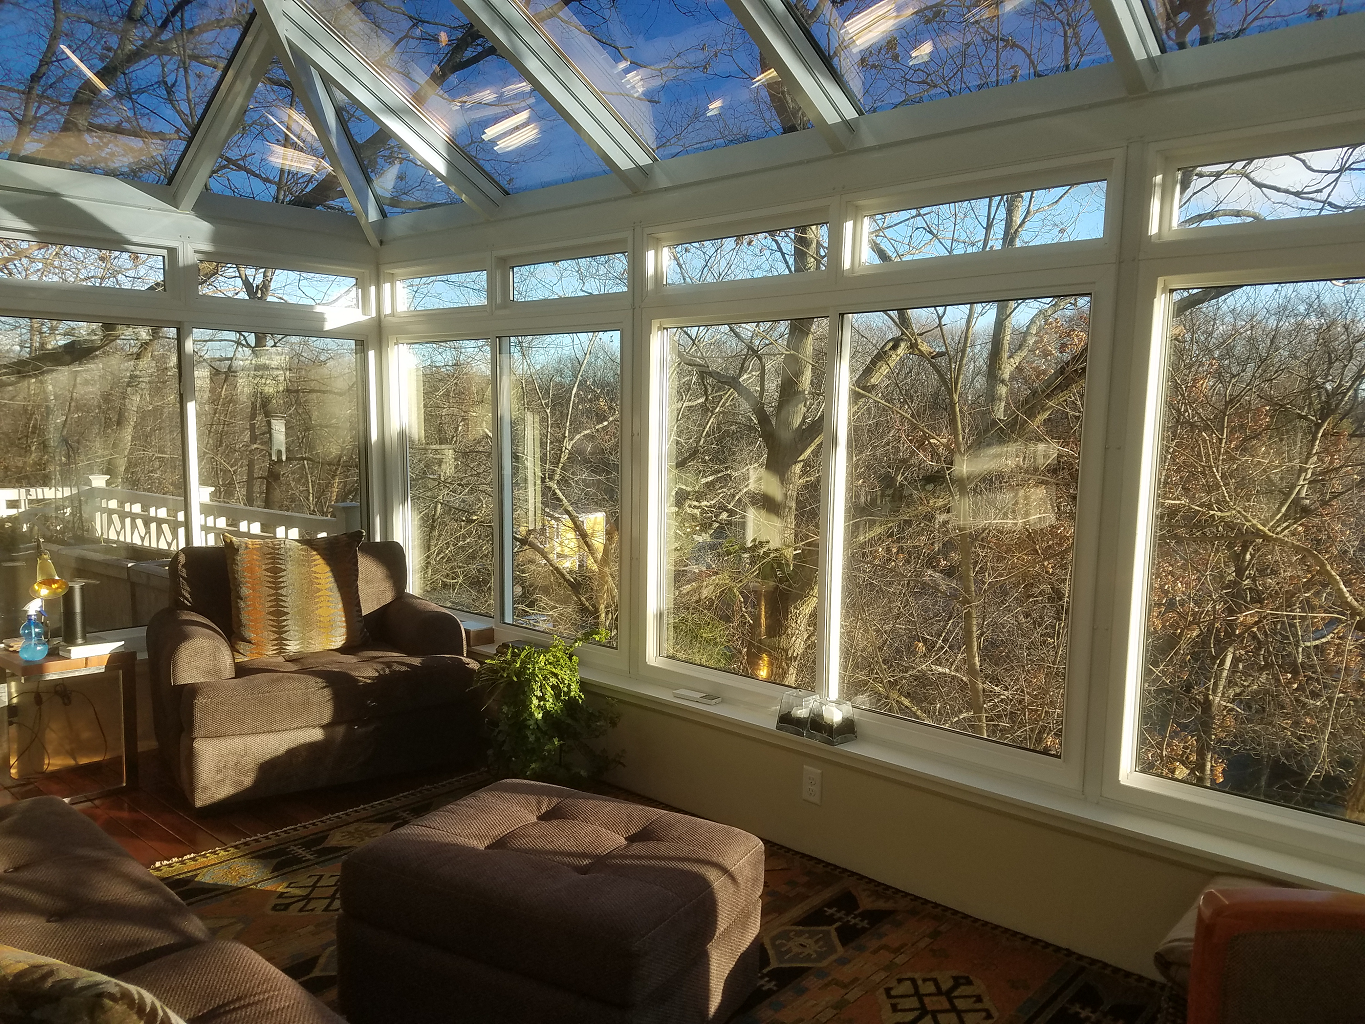 Four Seasons Sunrooms image 16